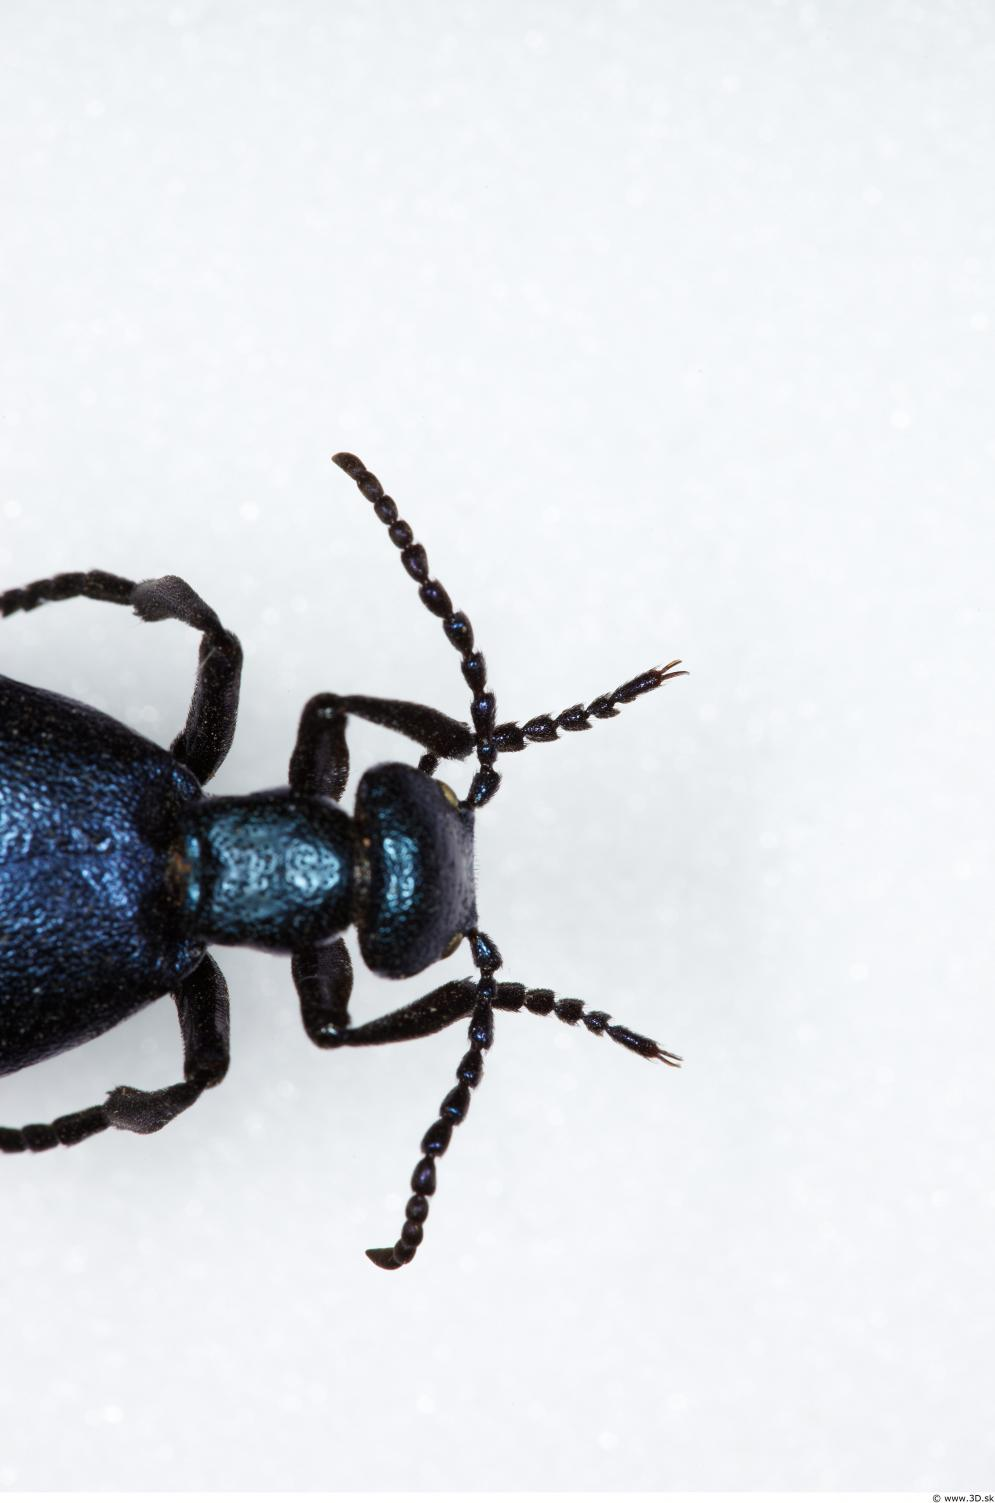 Image from Beetles - Animal photo references from 3D.sk - 401345beetles_0001_0043.jpg